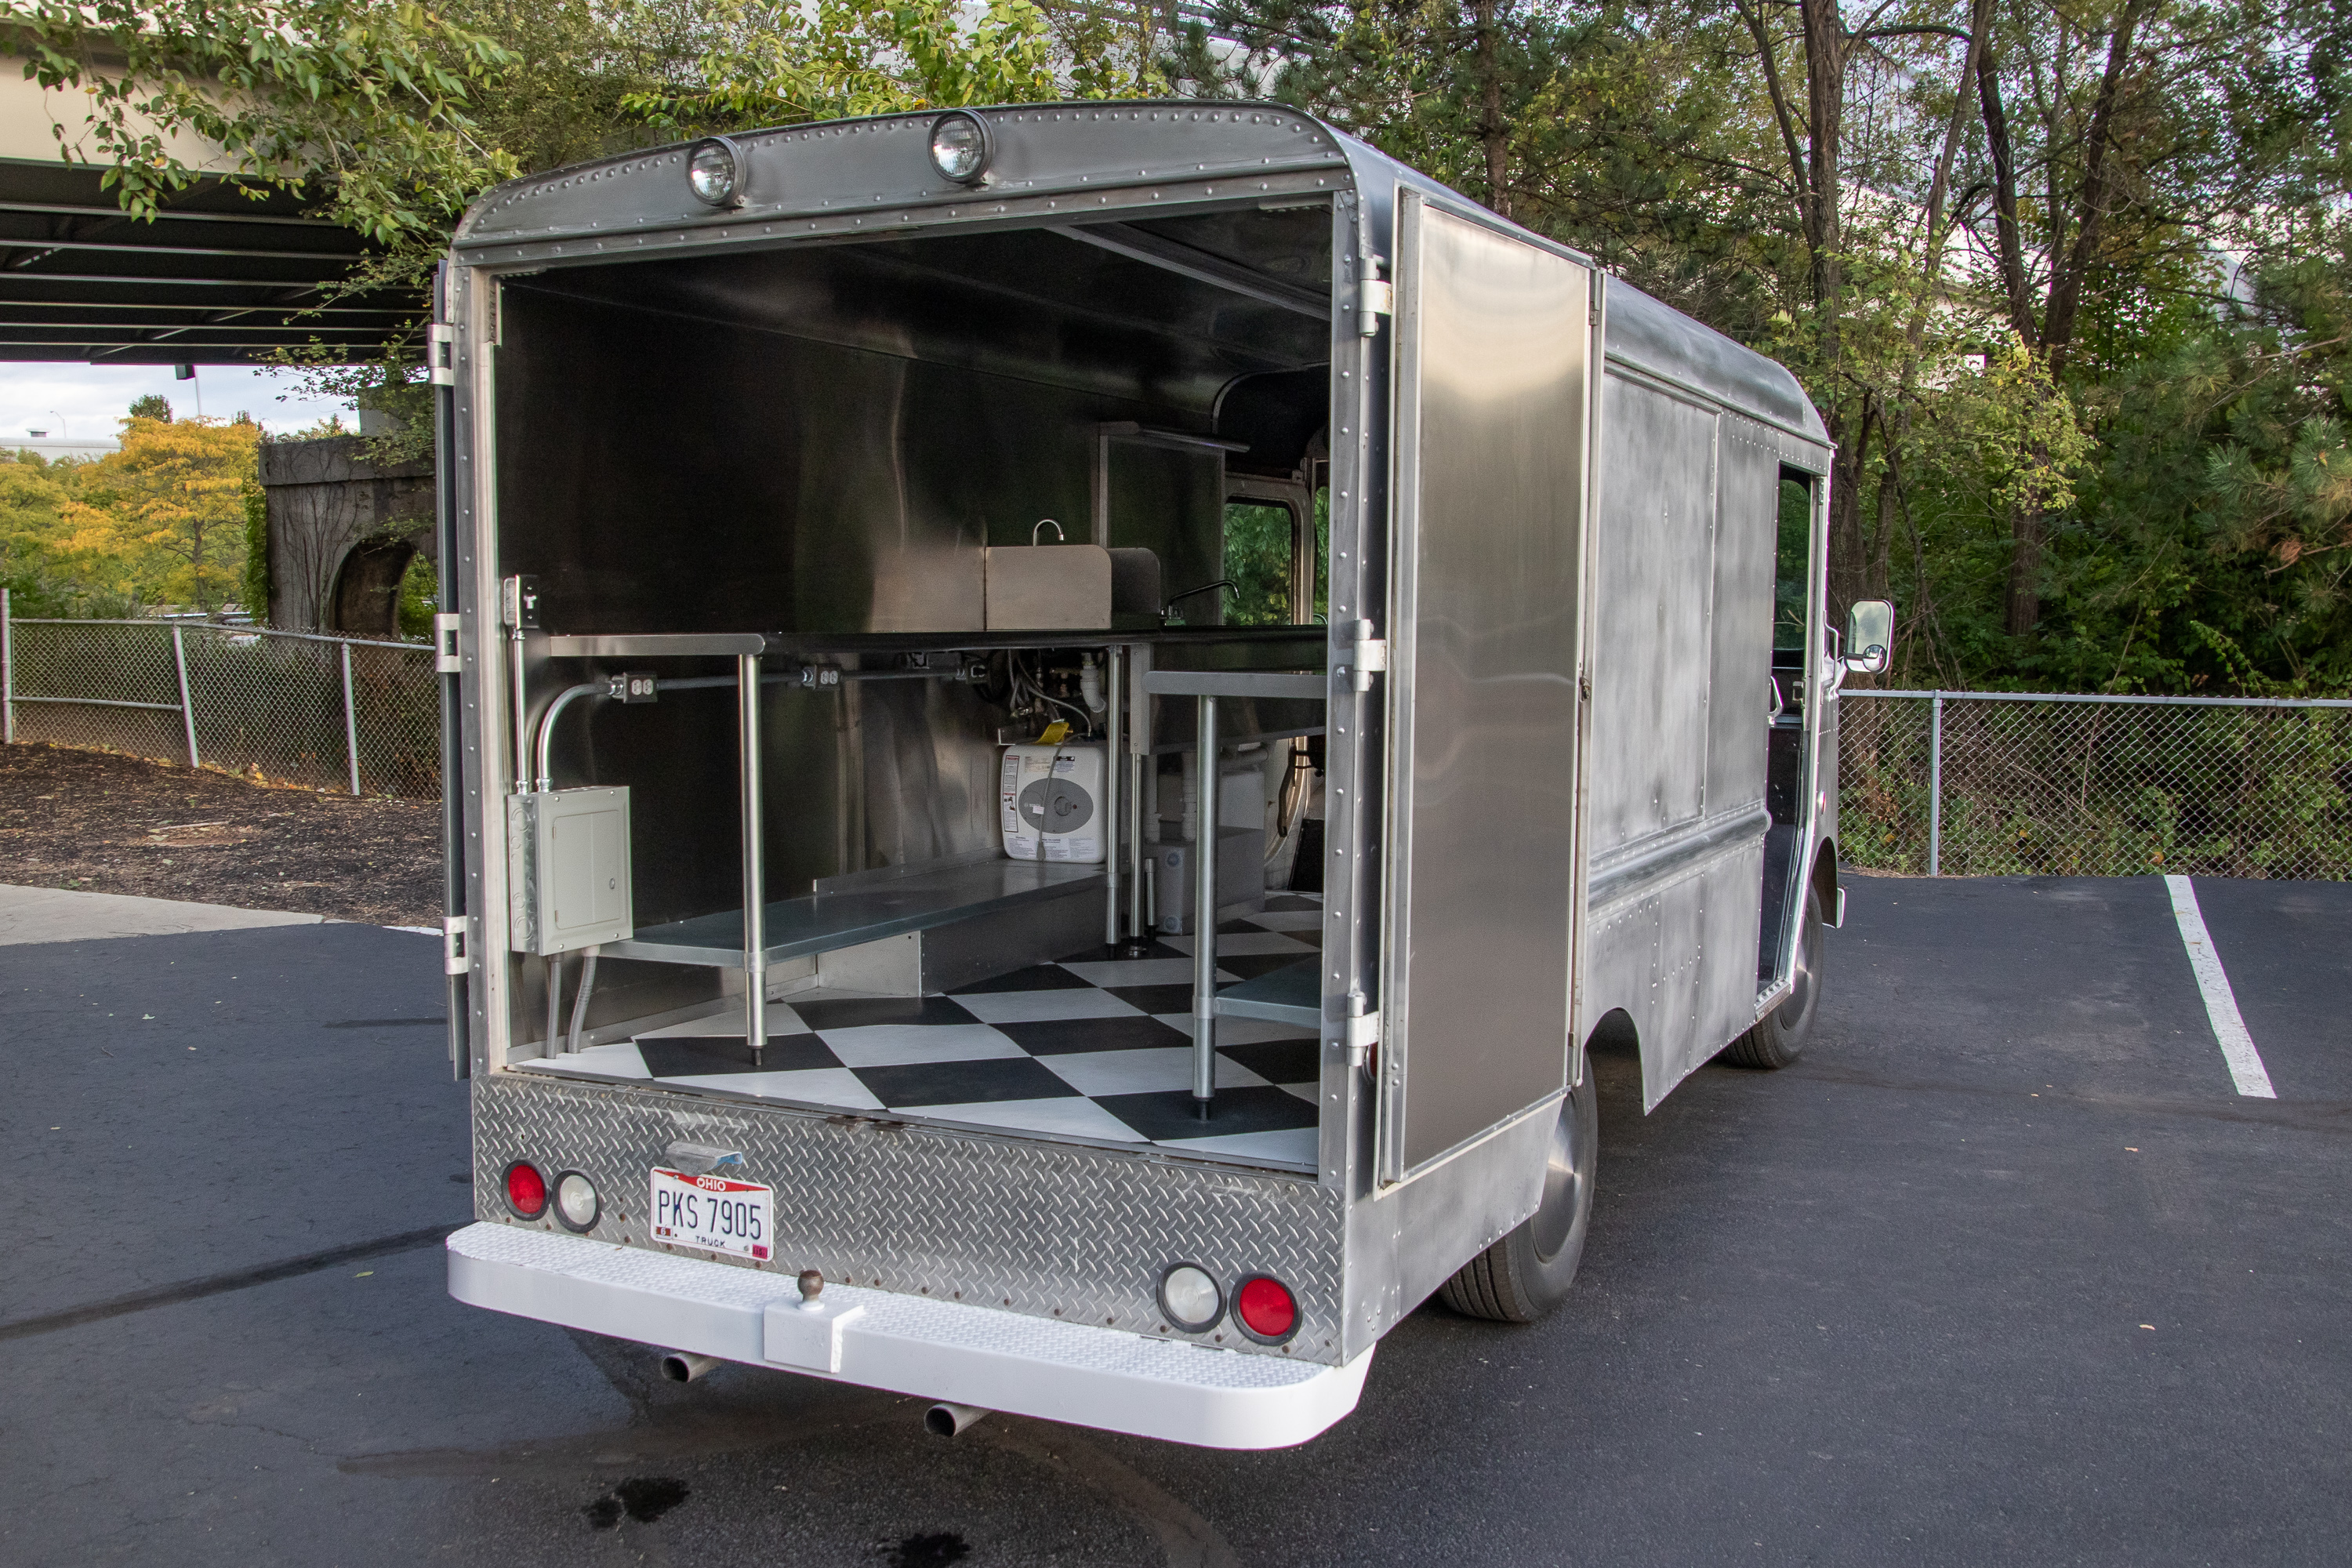 Food Truck Rental rear doors open seeing inside from side angle